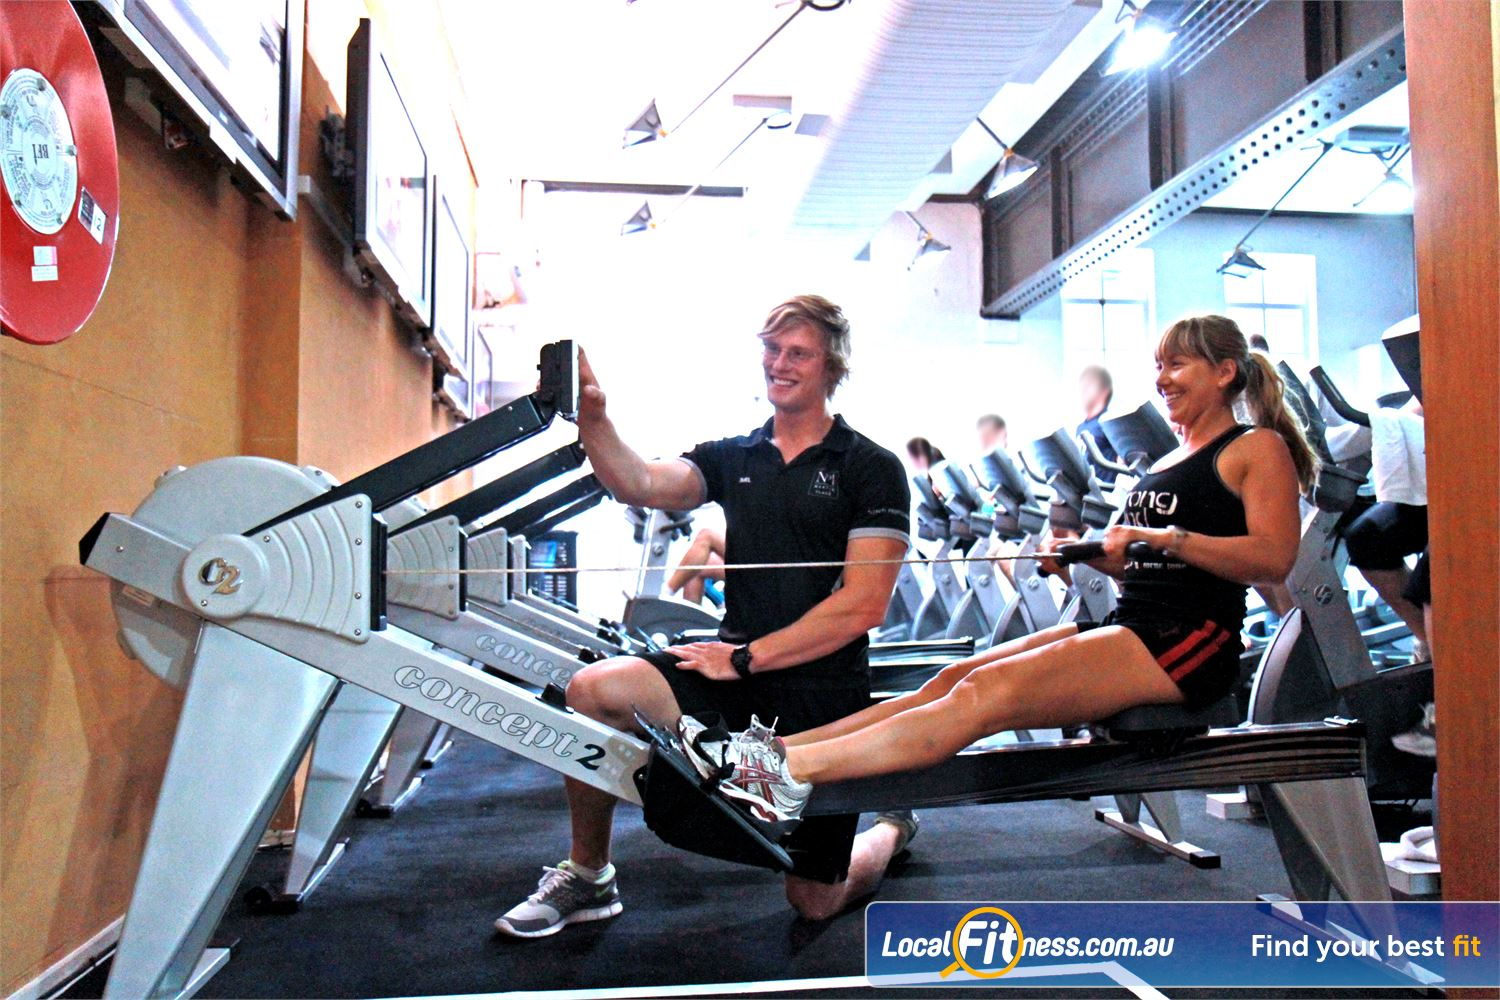 Goodlife Health Clubs Martin Place Near Strawberry Hills Our Sydney gym provides variety, with treadmills, cross-trainers, rowers and more.